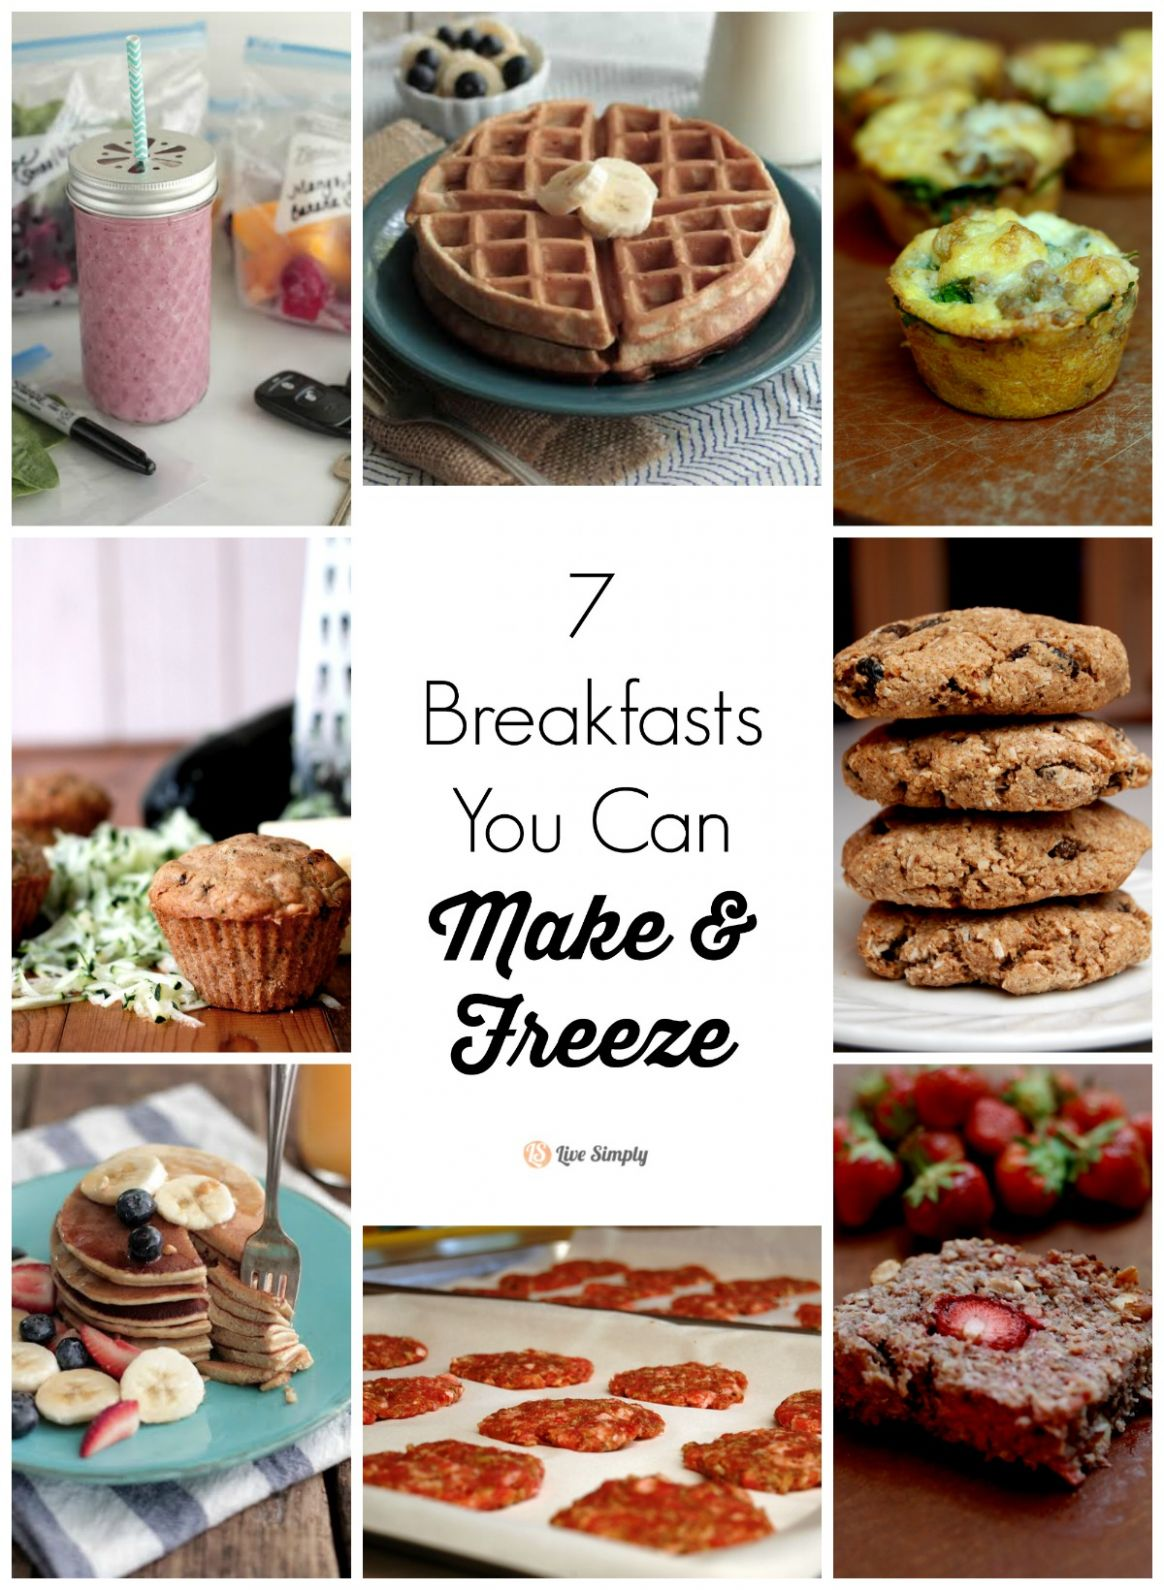 8 Breakfasts You Can Make and Freeze - Live Simply - Breakfast Recipes To Freeze